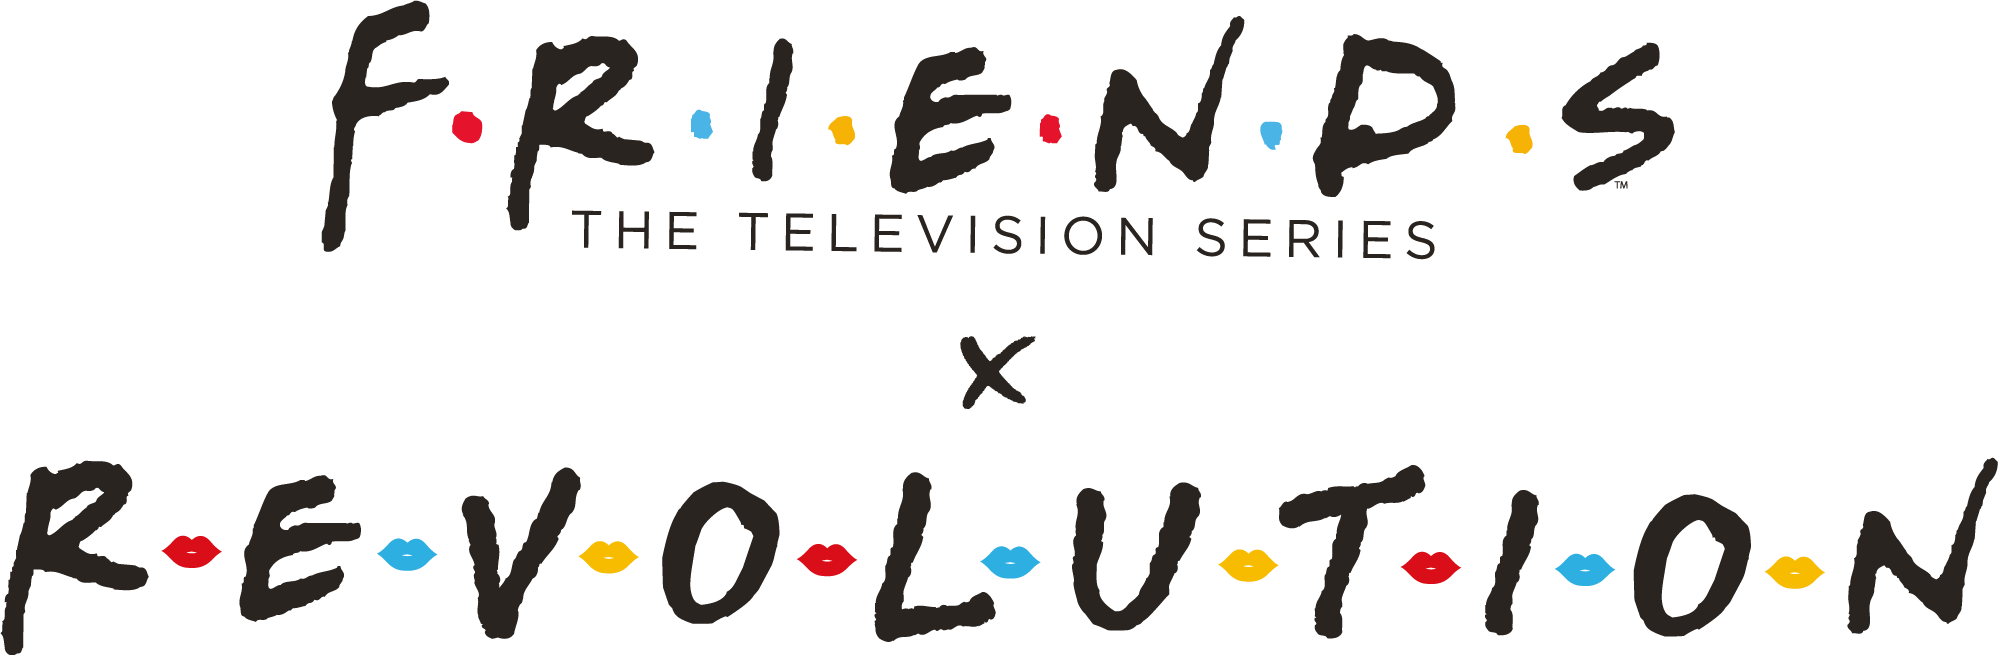 FRIENDS THE TELEVISION SERIES X REVOLUTION